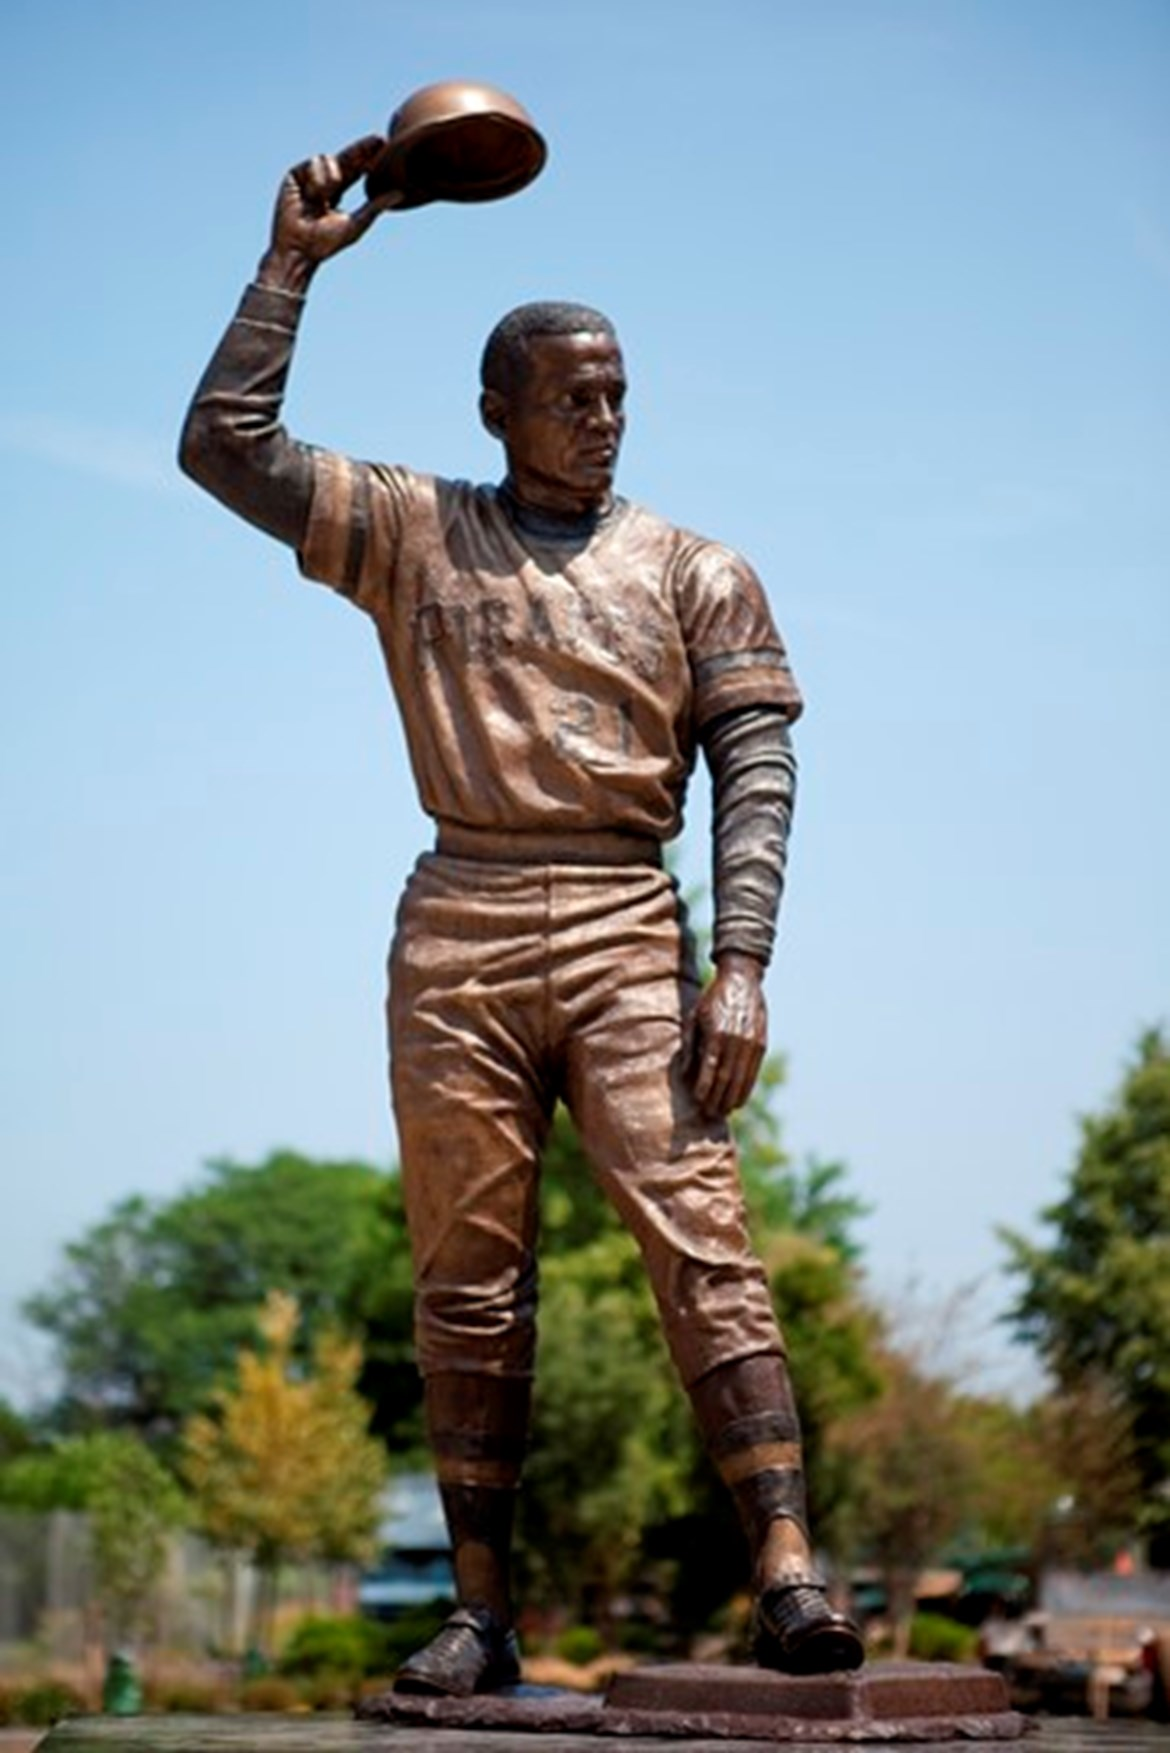 GOYA FOODS HONORS THE LIFETIME ACHIEVEMENTS OF ROBERTO CLEMENTE & UNVEILS LIFE SIZE STATUE AT ROBERTO CLEMENTE STATE PARK